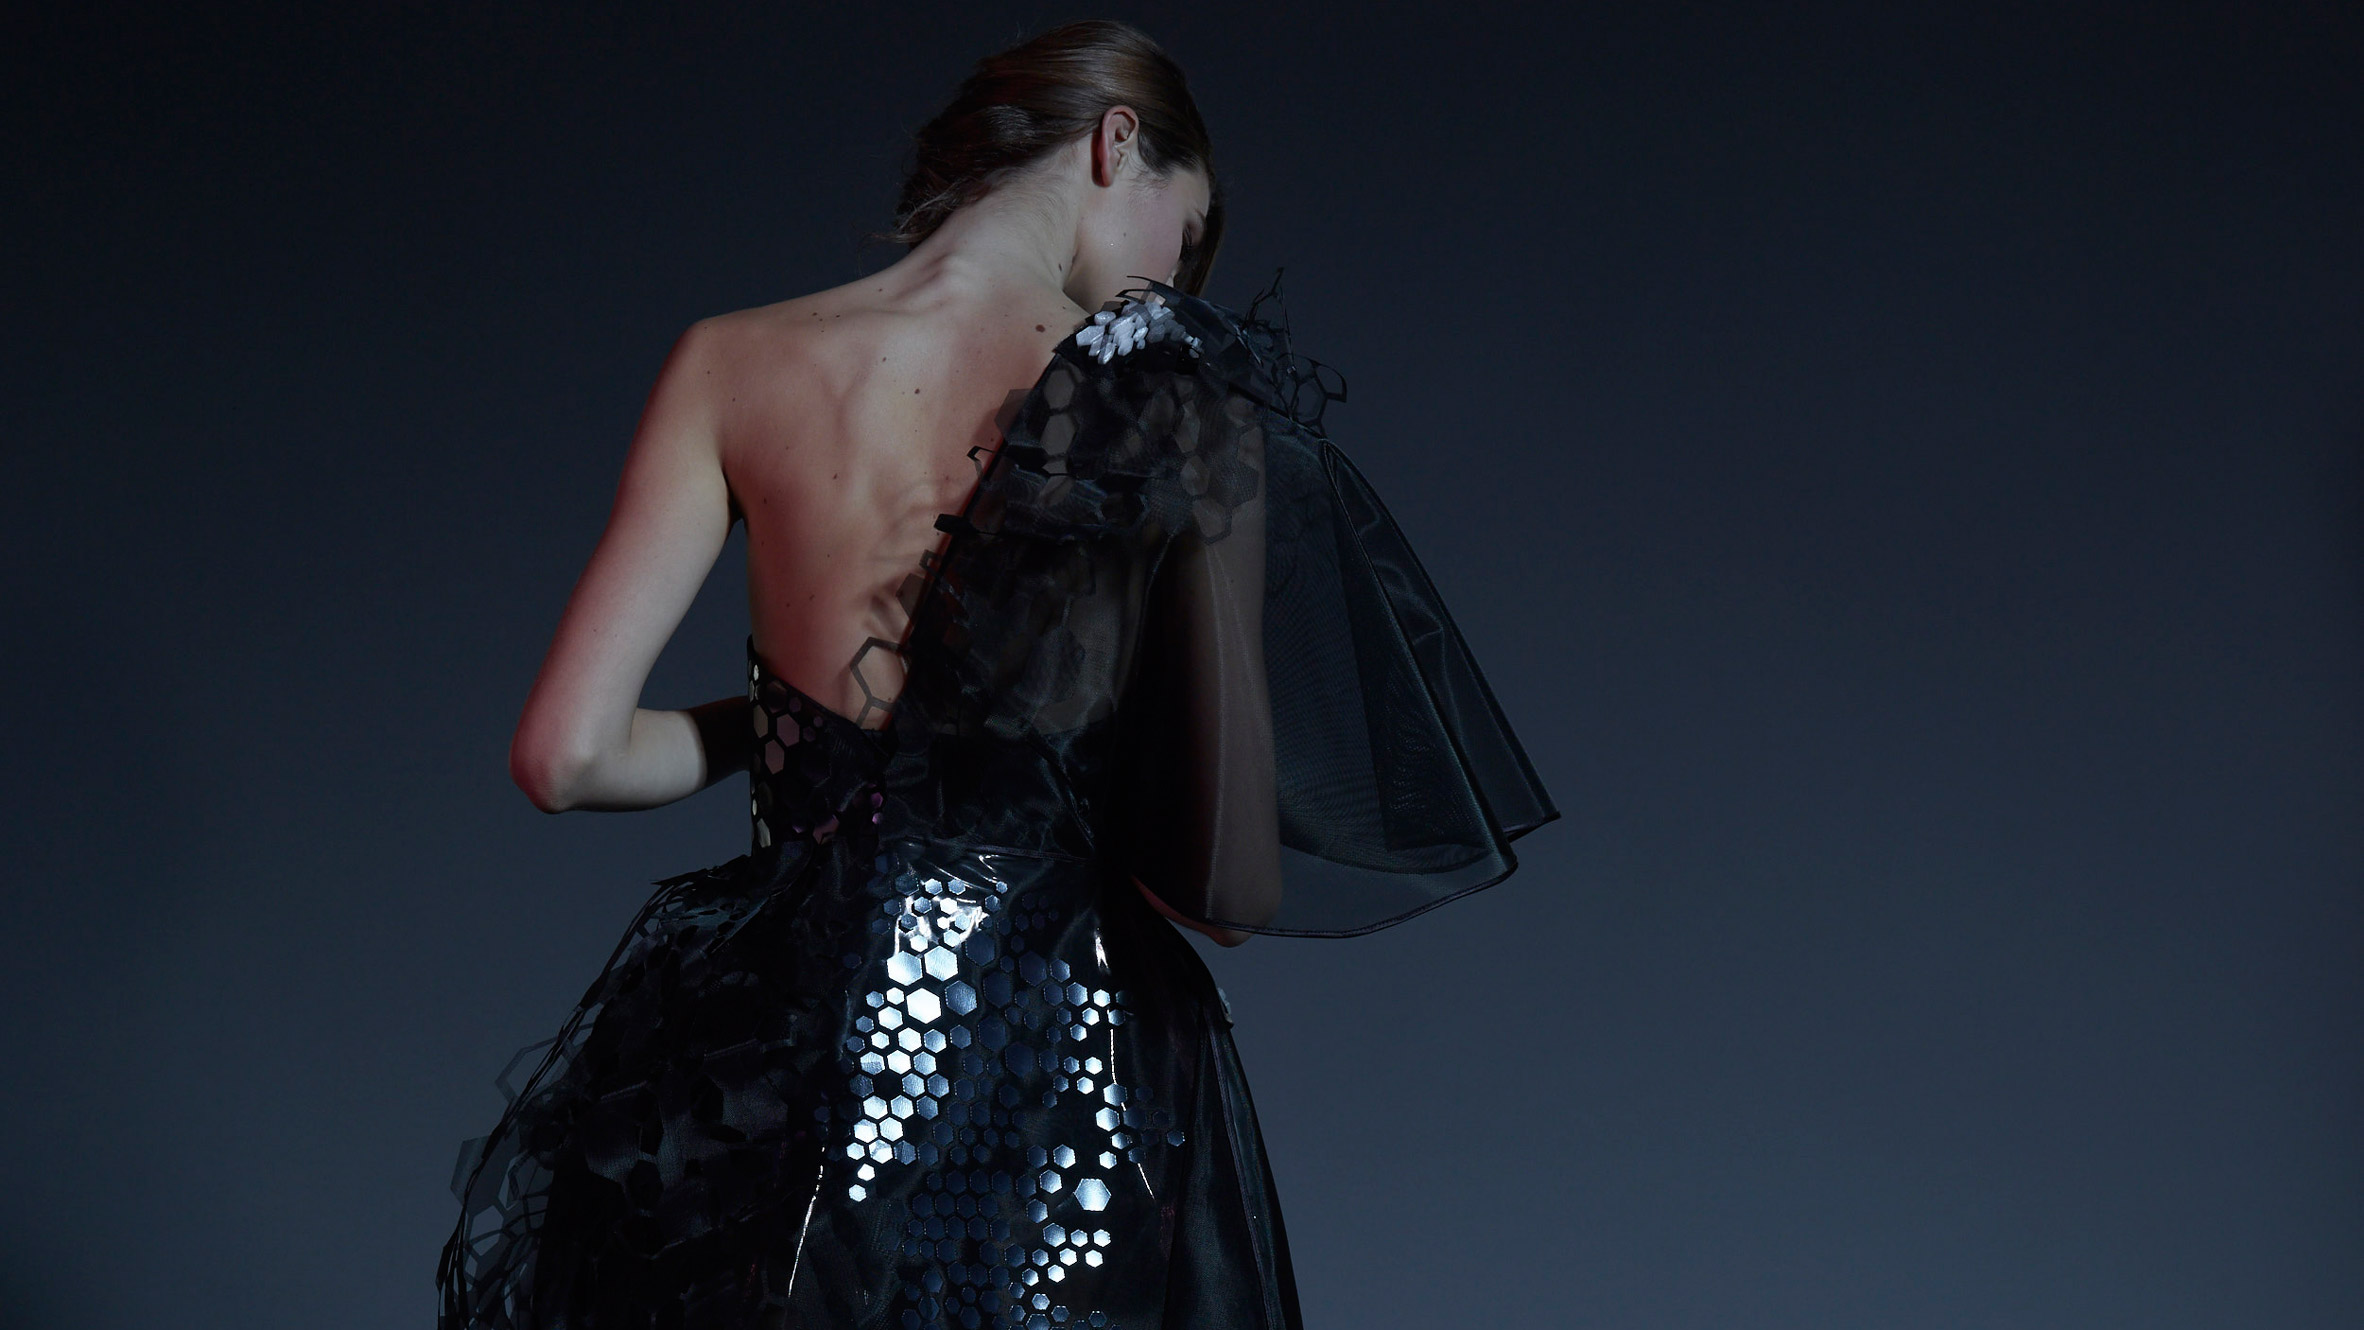 First dress made with graphene by Cute Circuit